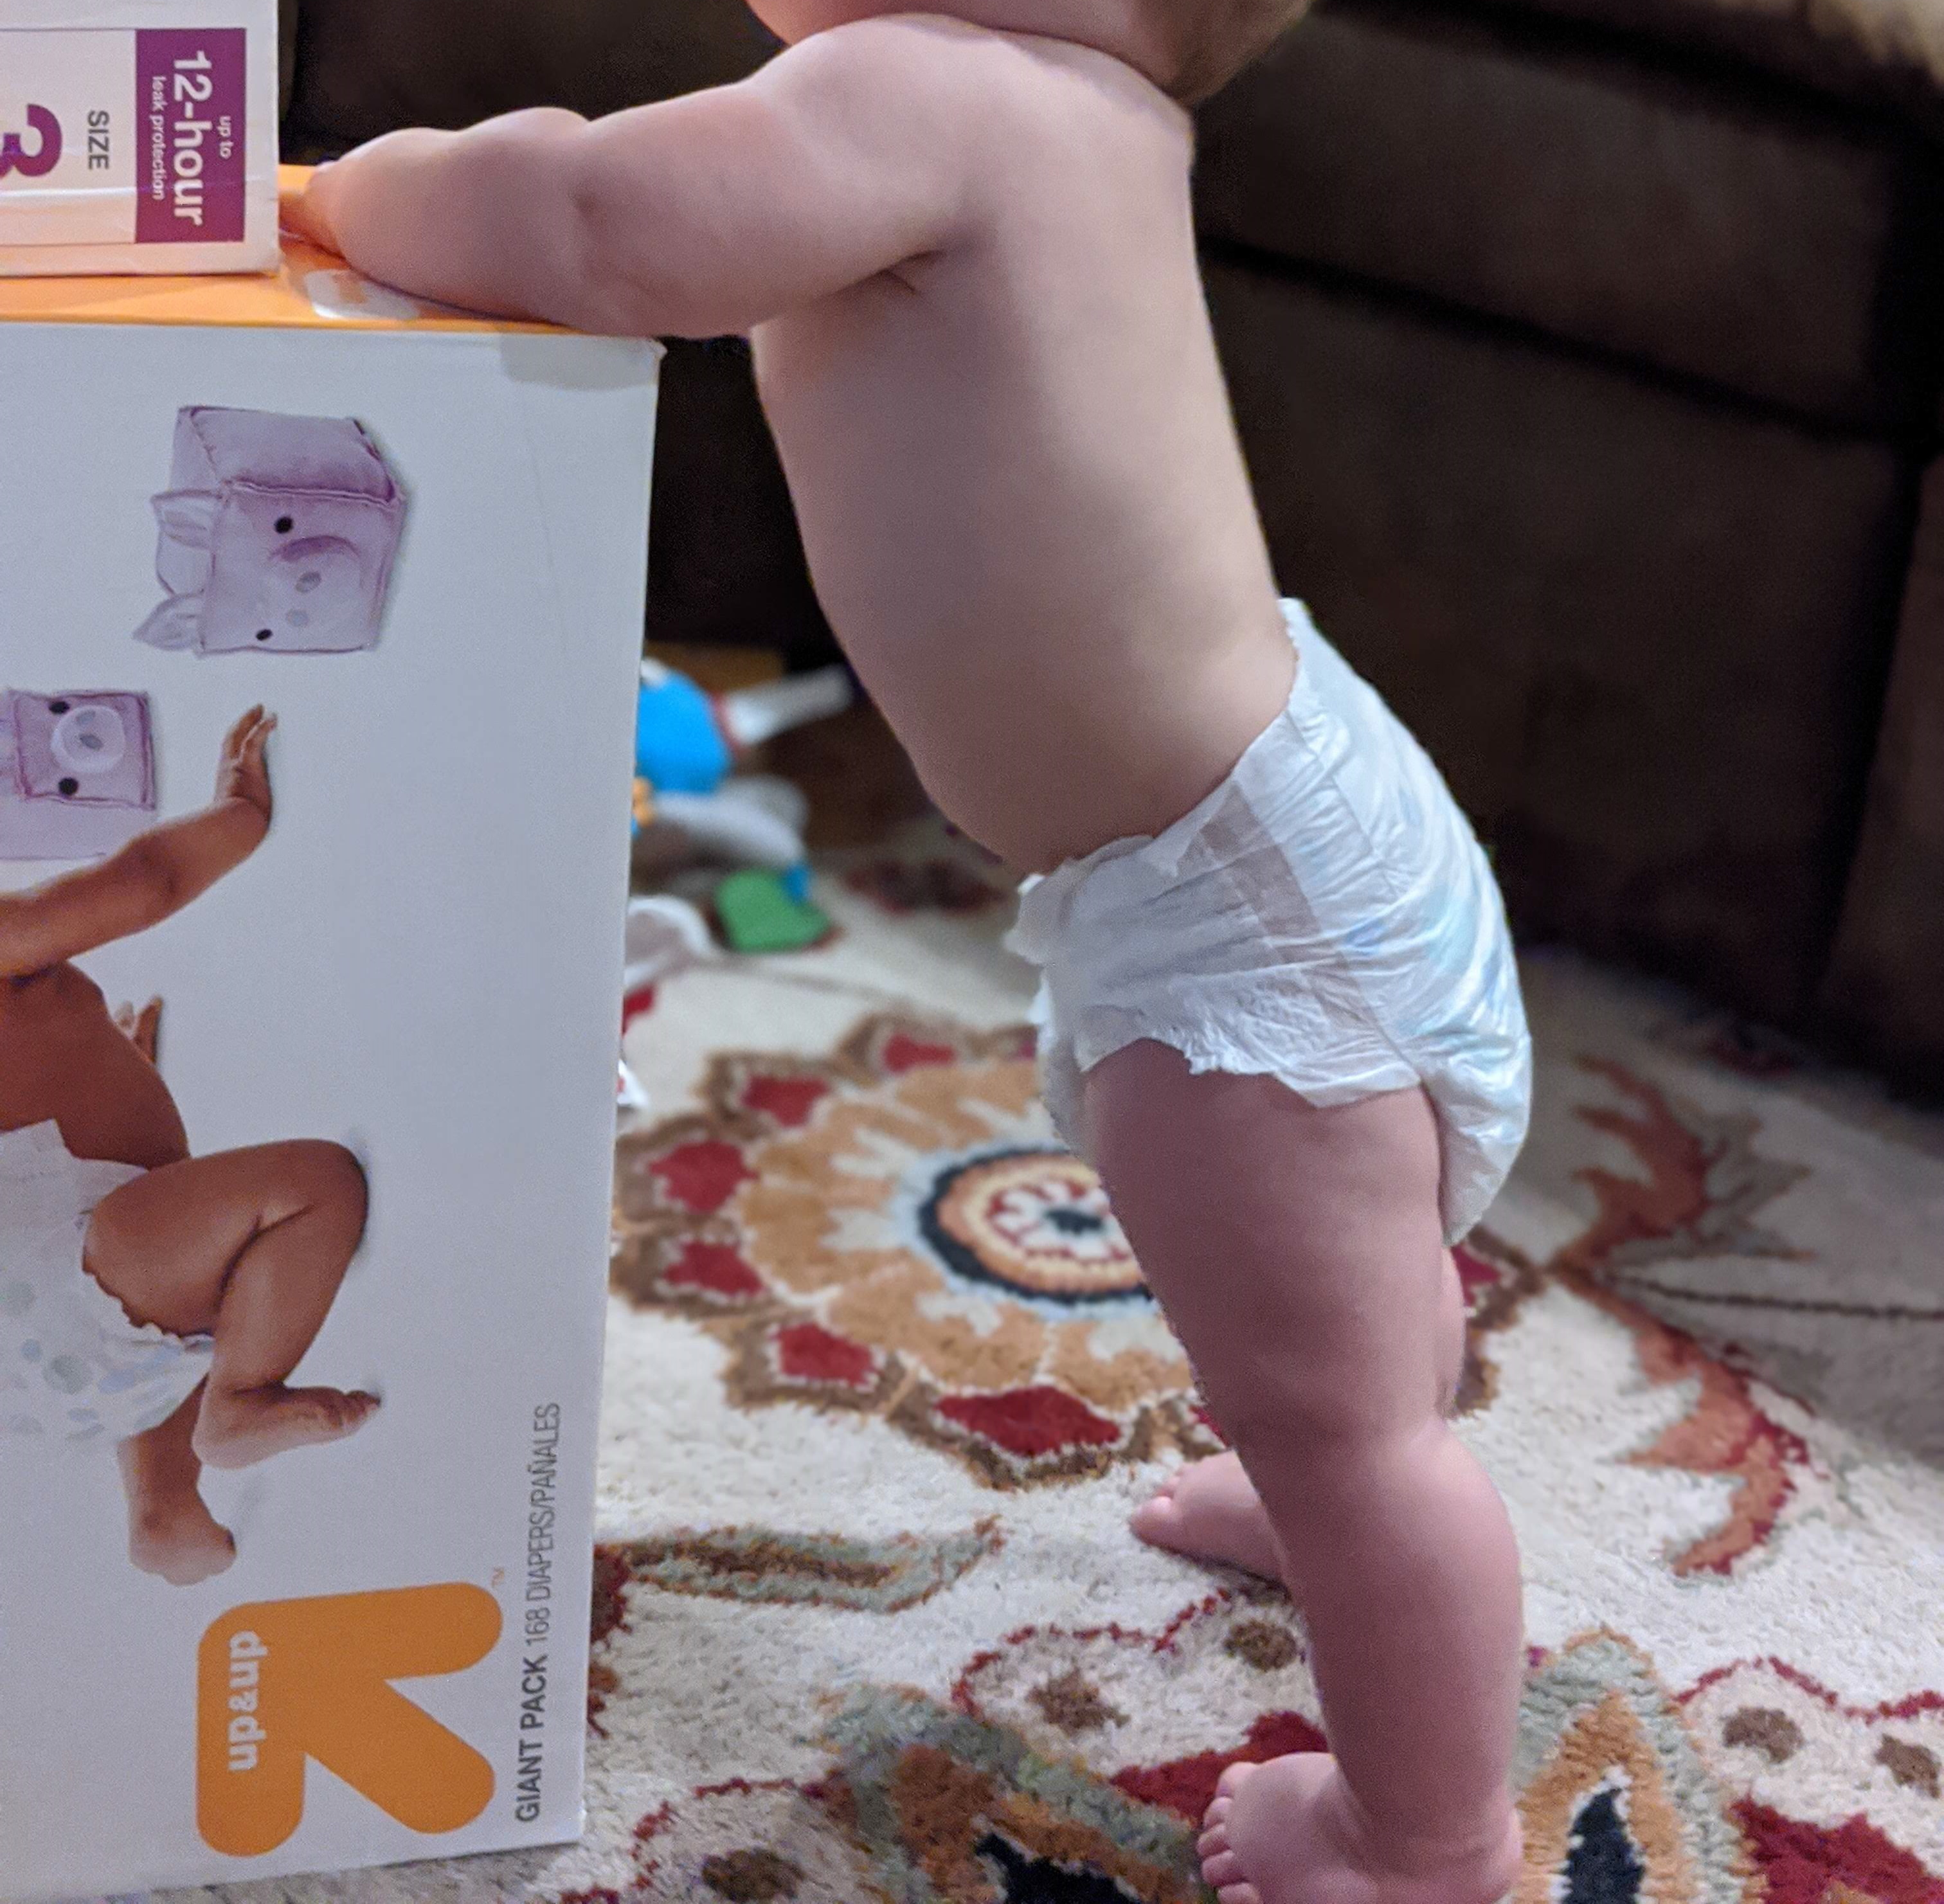 Baby in a diaper next to a box of diapers